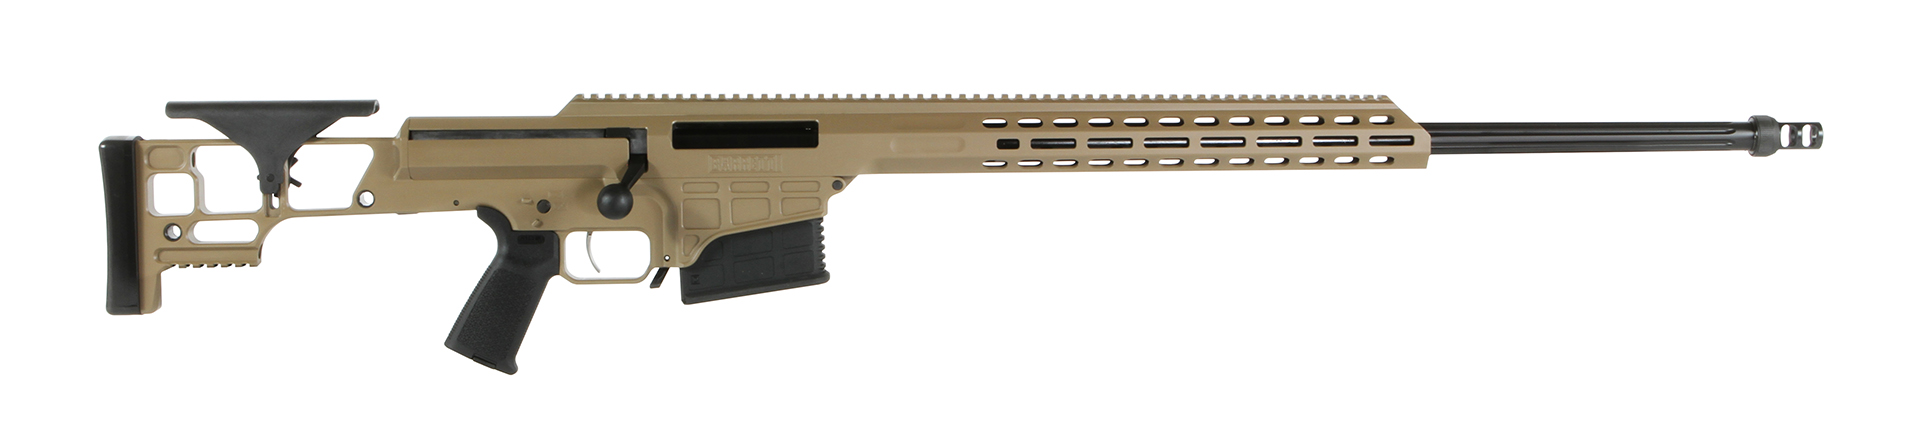 Barrett Firearms MRAD 6.5 Creedmoor